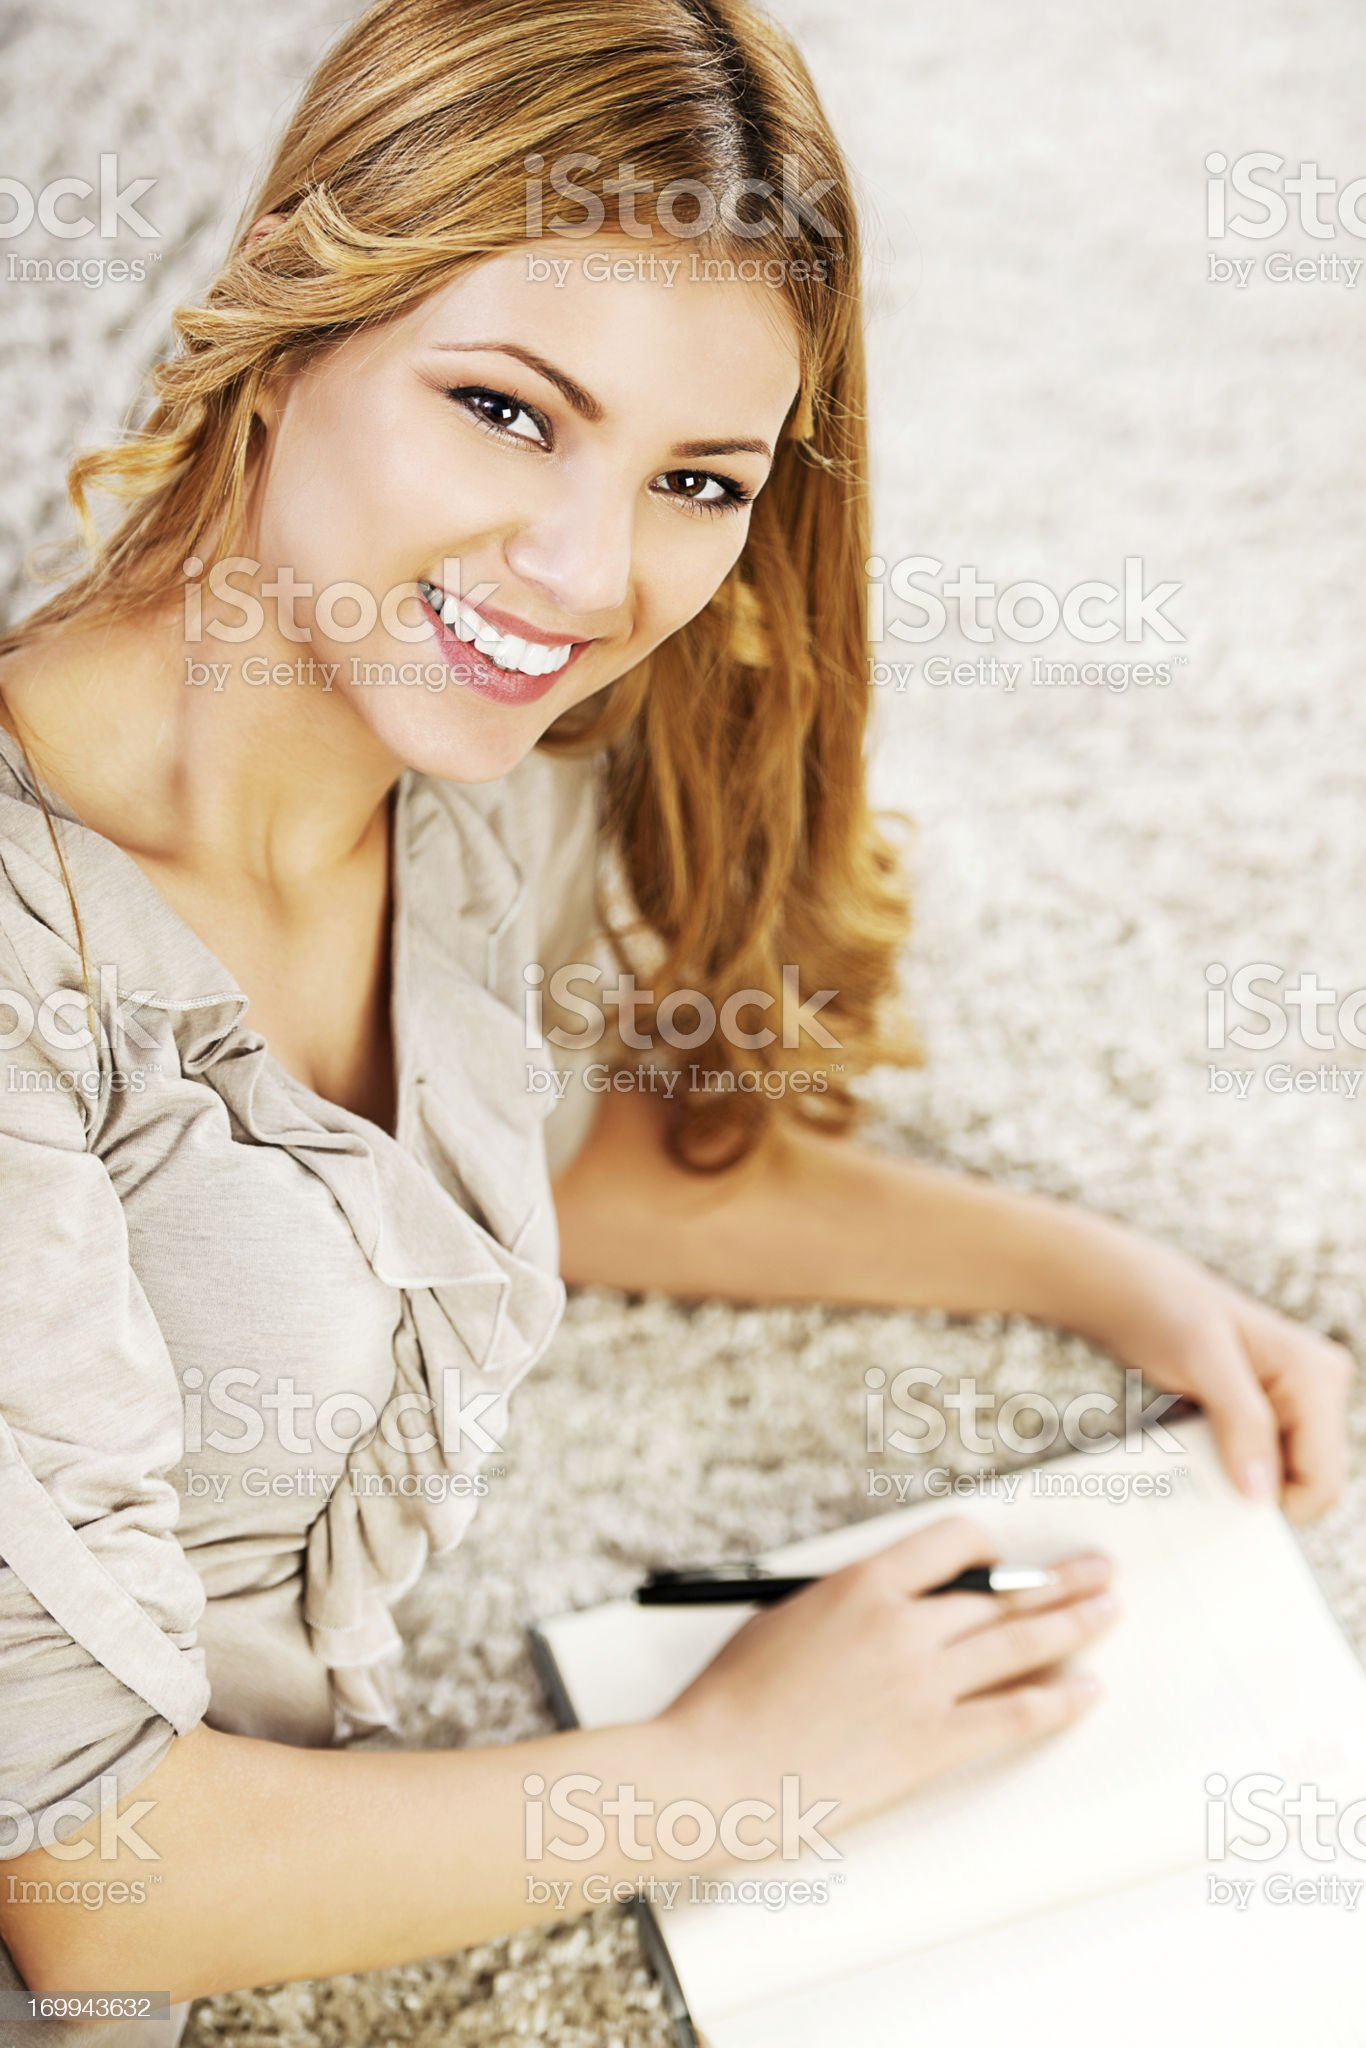 Portrait of a blonde woman writing diary. royalty-free stock photo